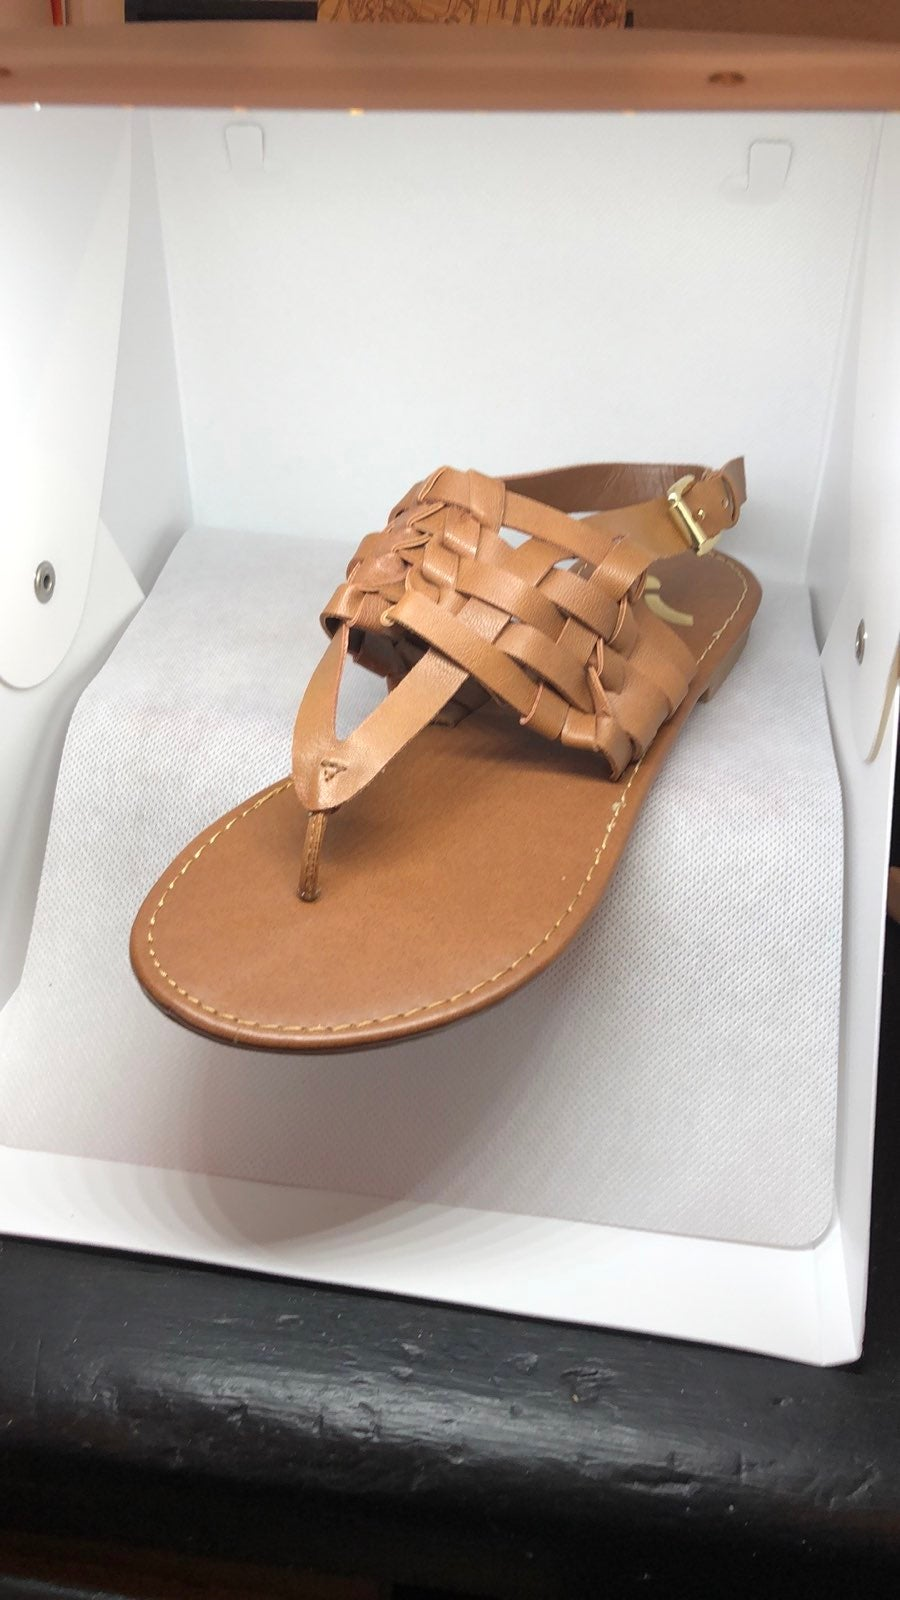 Report brown sandal size 5.5